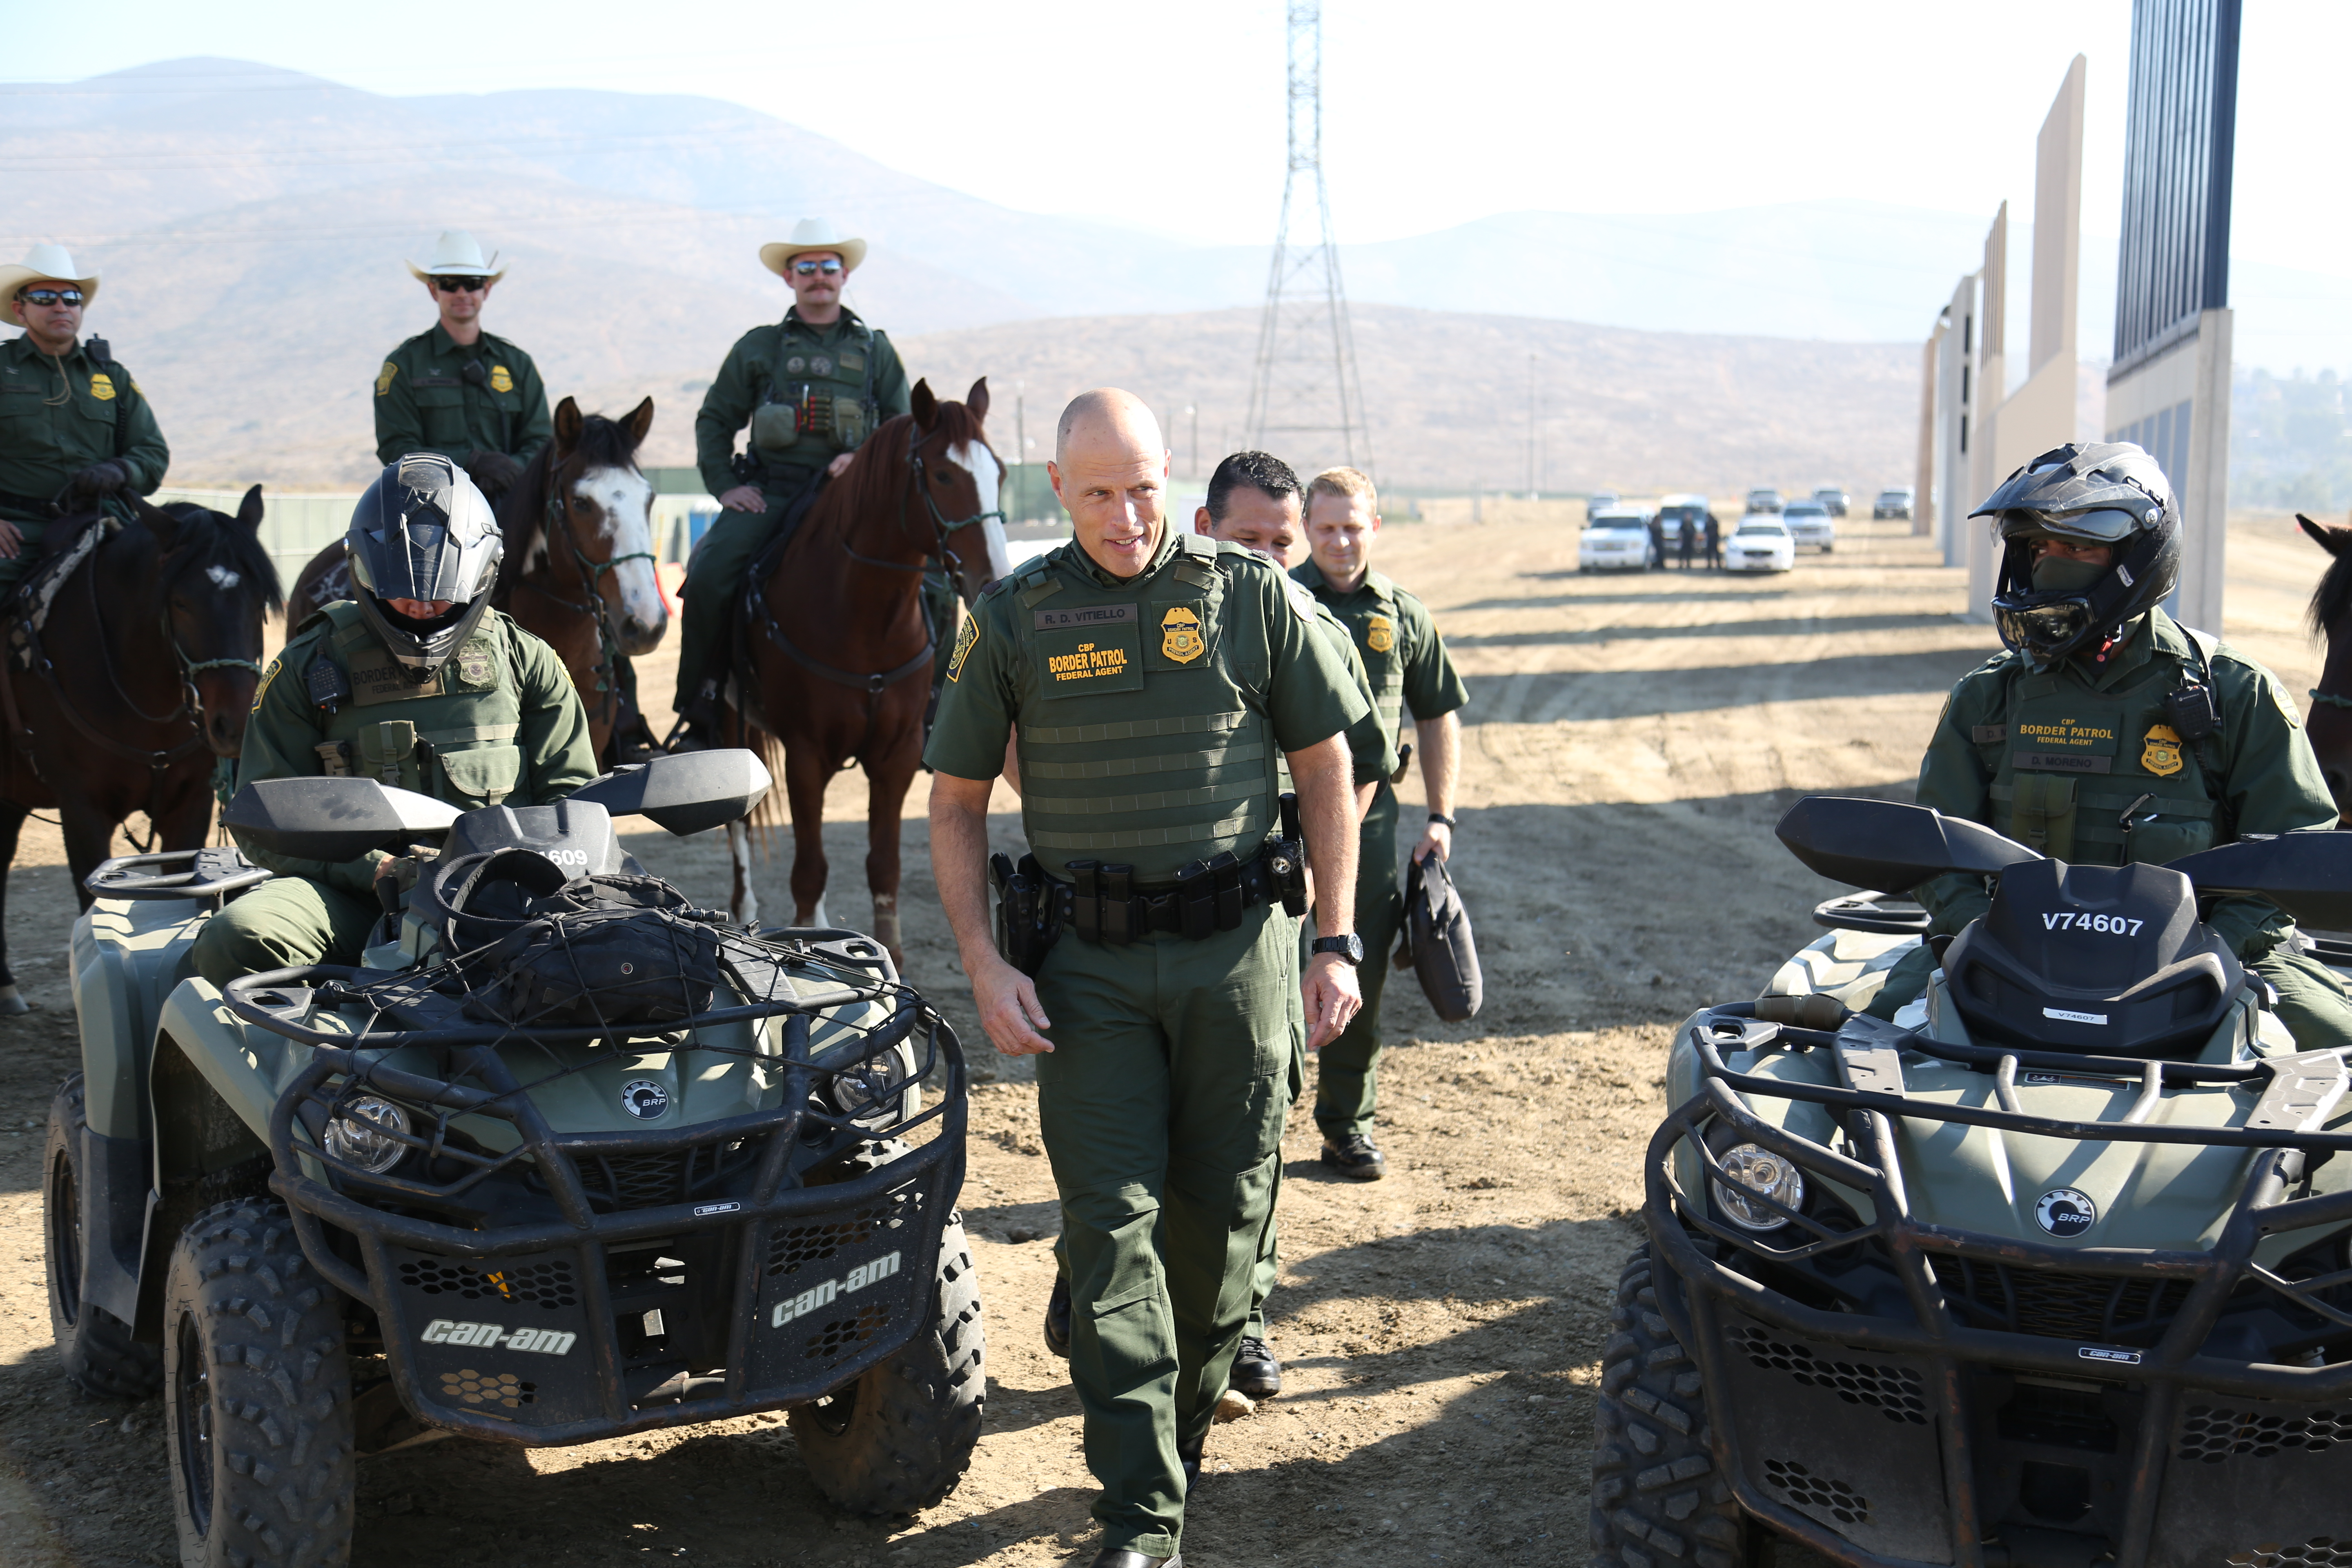 border patrol in arizona Border patrol makes three large drug seizures - tucson, az - three separate stops uncovered pounds of pot, pounds of meth, and pounds of cocaine.